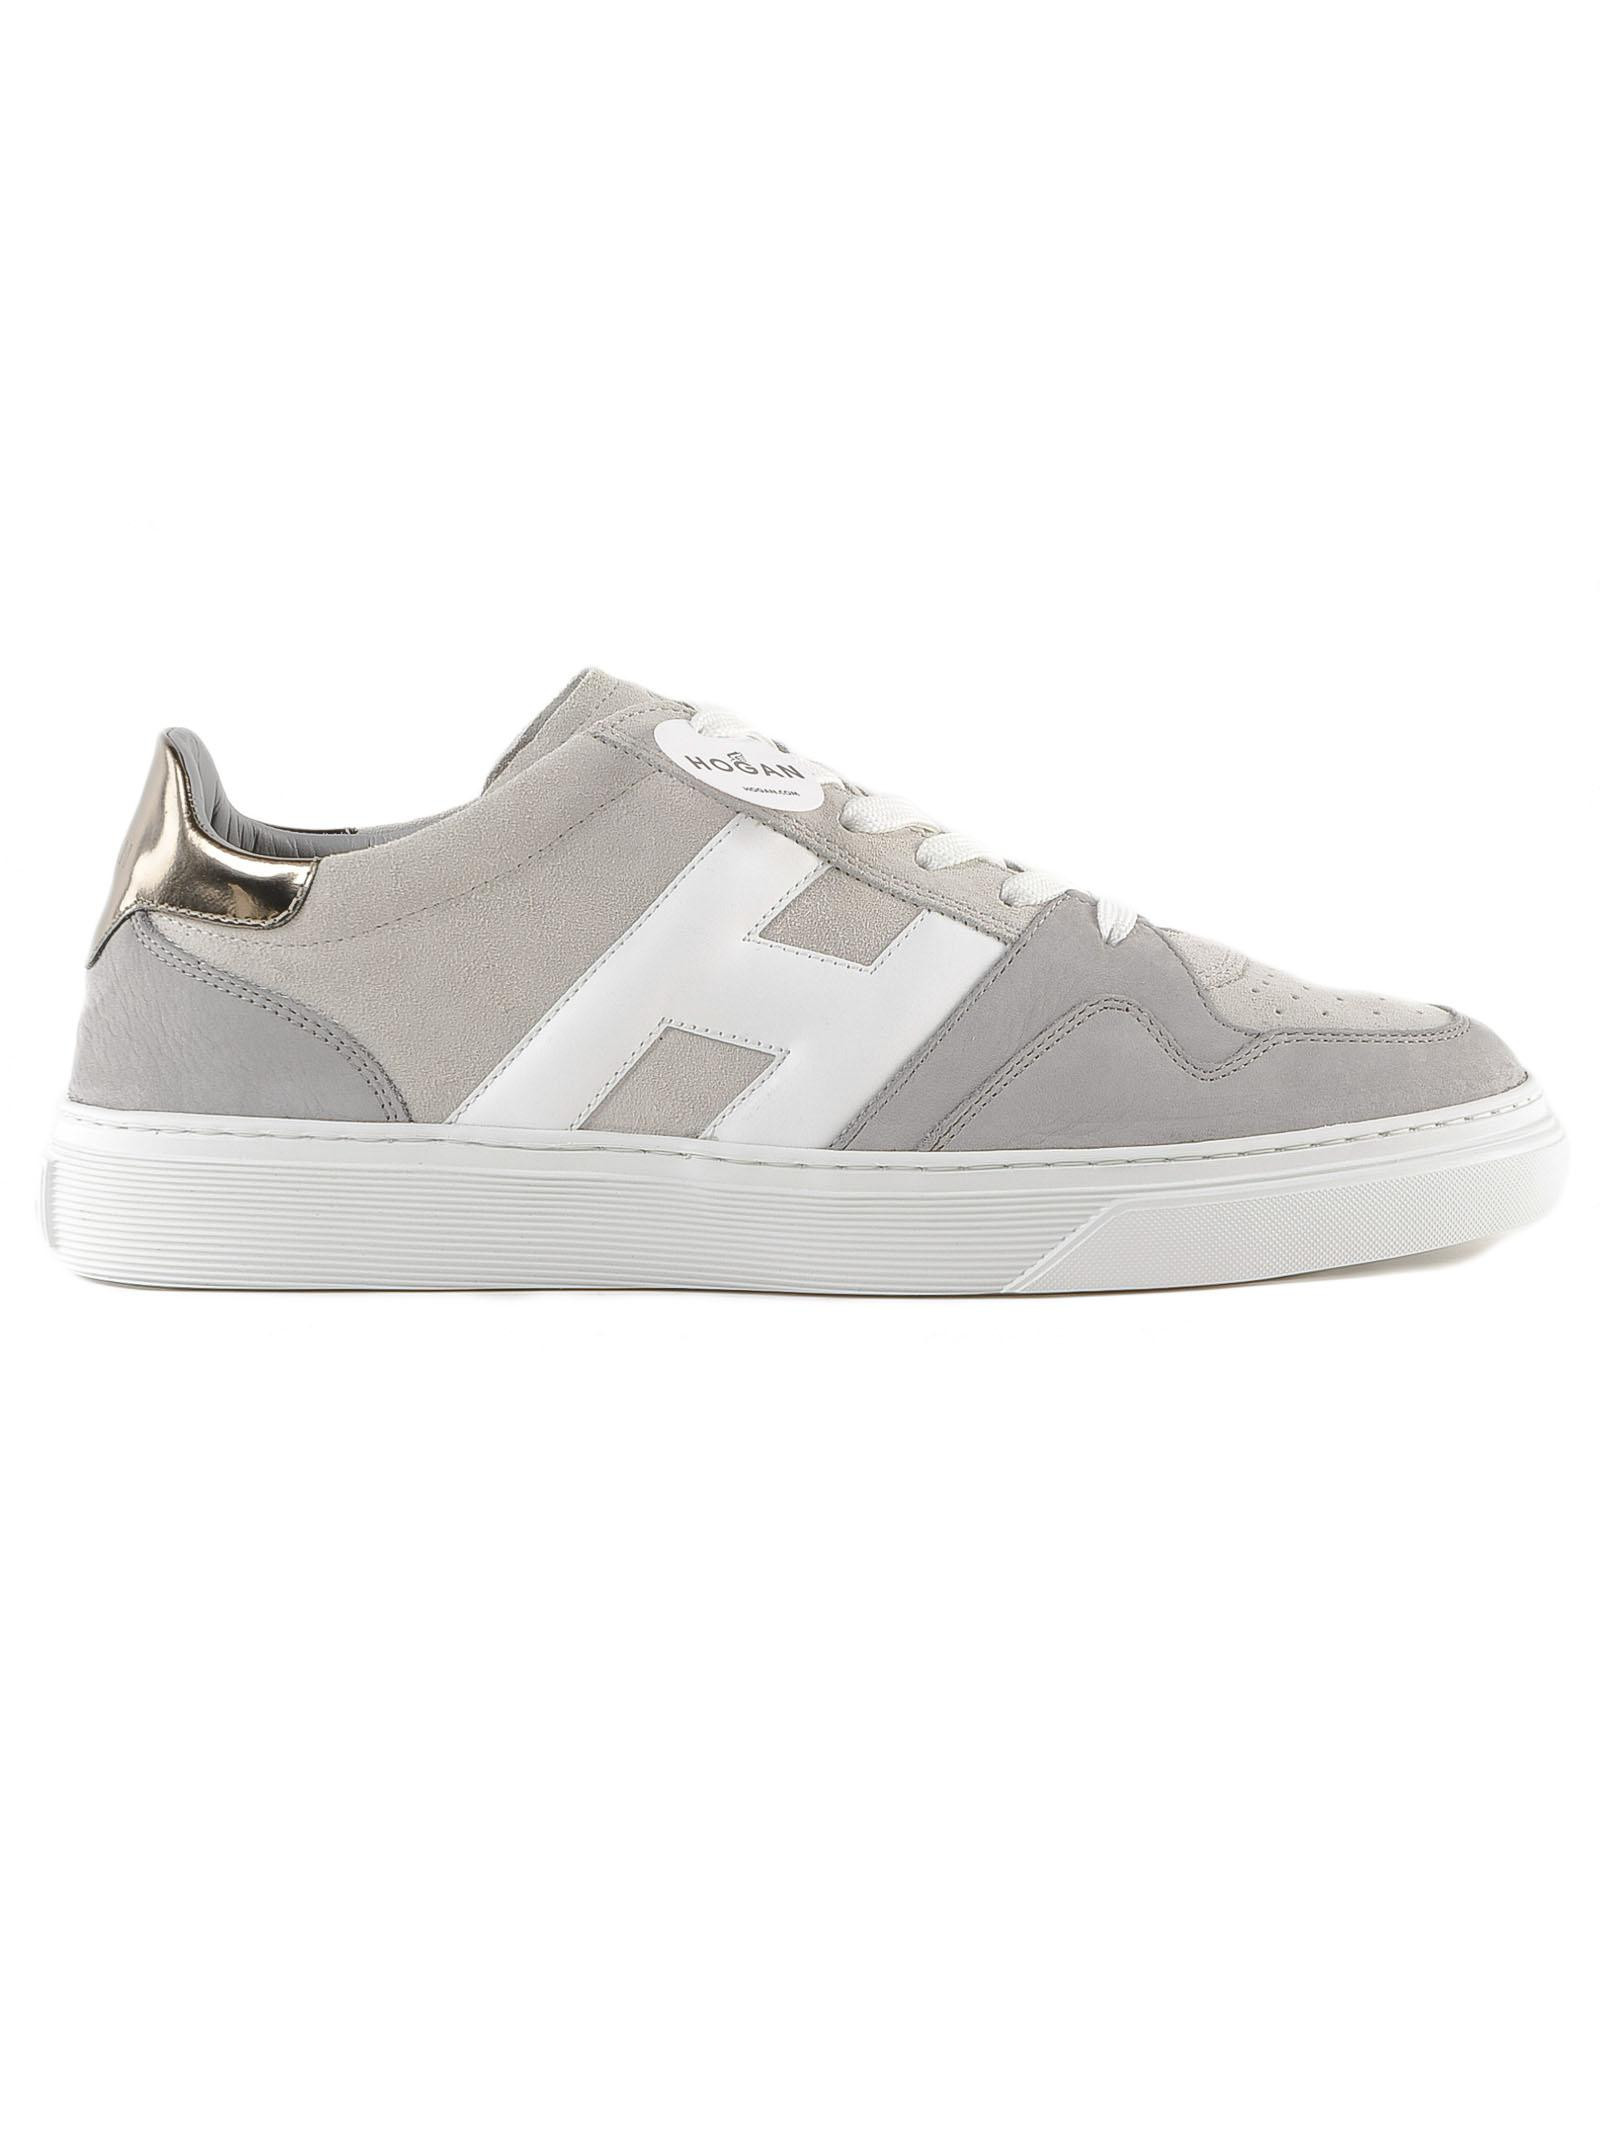 a48a5bf97014 Lyst - Hogan Sneakers for Men